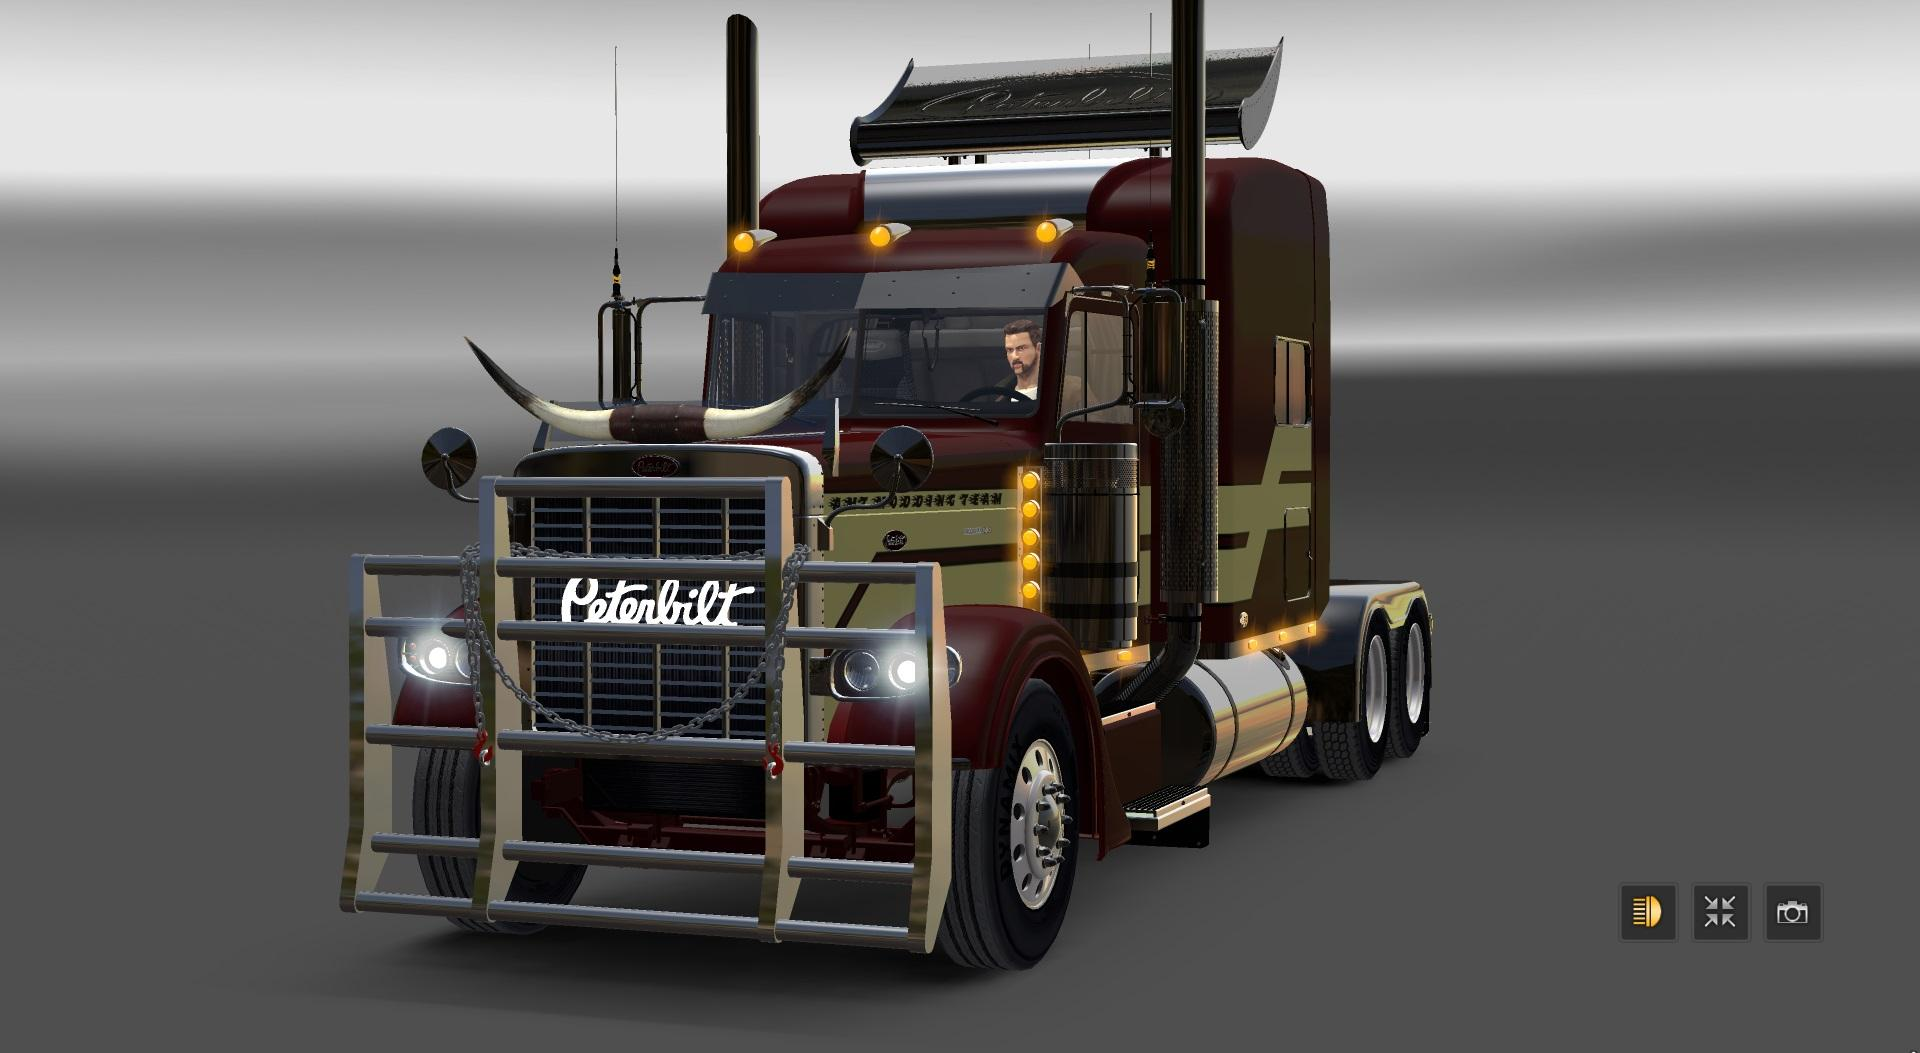 hight resolution of wiring diagram as well american truck simulator mod kenworth t680 wiring diagram as well american truck simulator mod kenworth t680